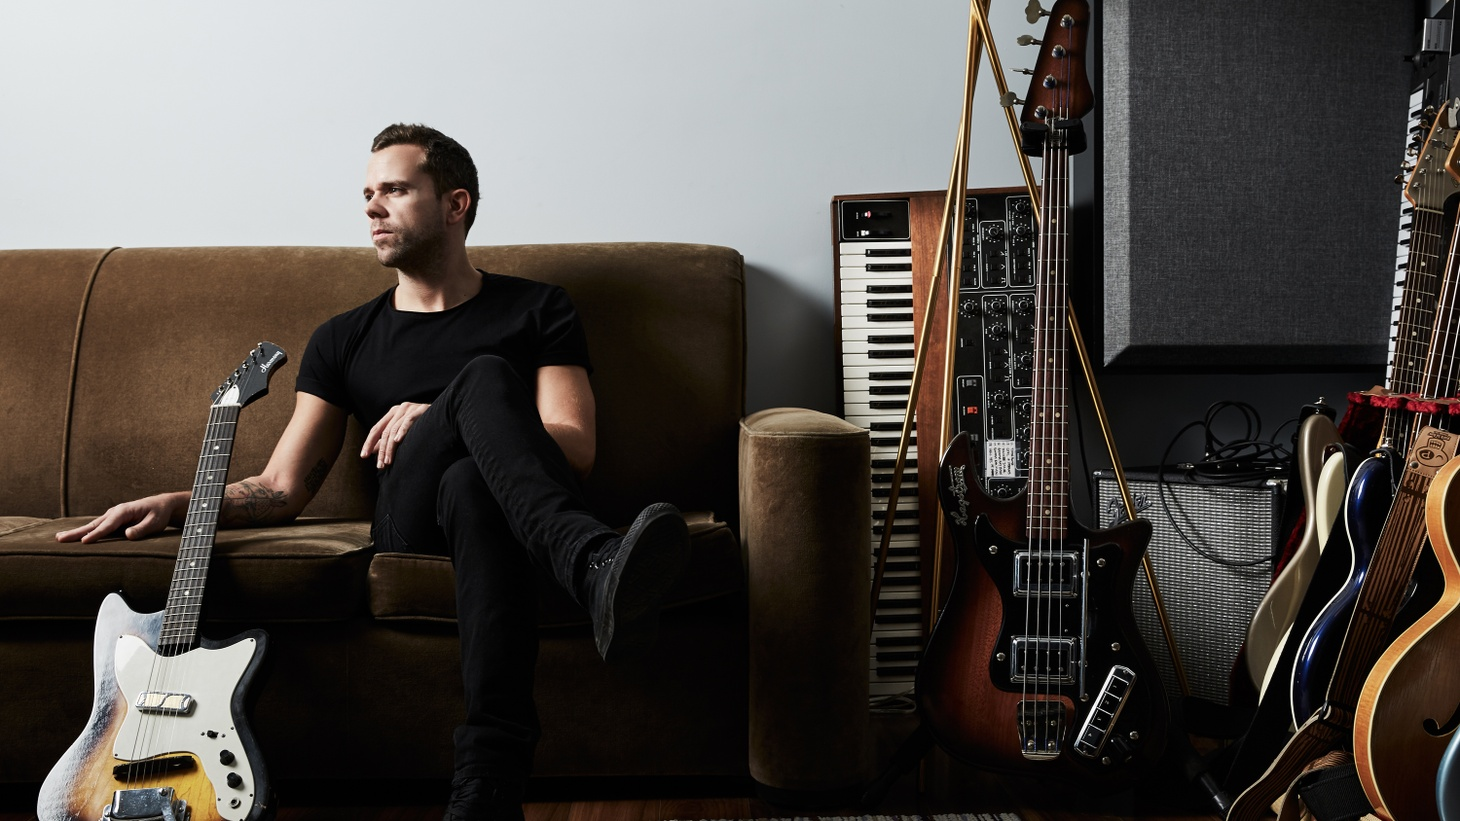 After a couple of years of hardcore touring, Anthony Gonzalez, aka M83, is ready to unleash his new album unto the world.